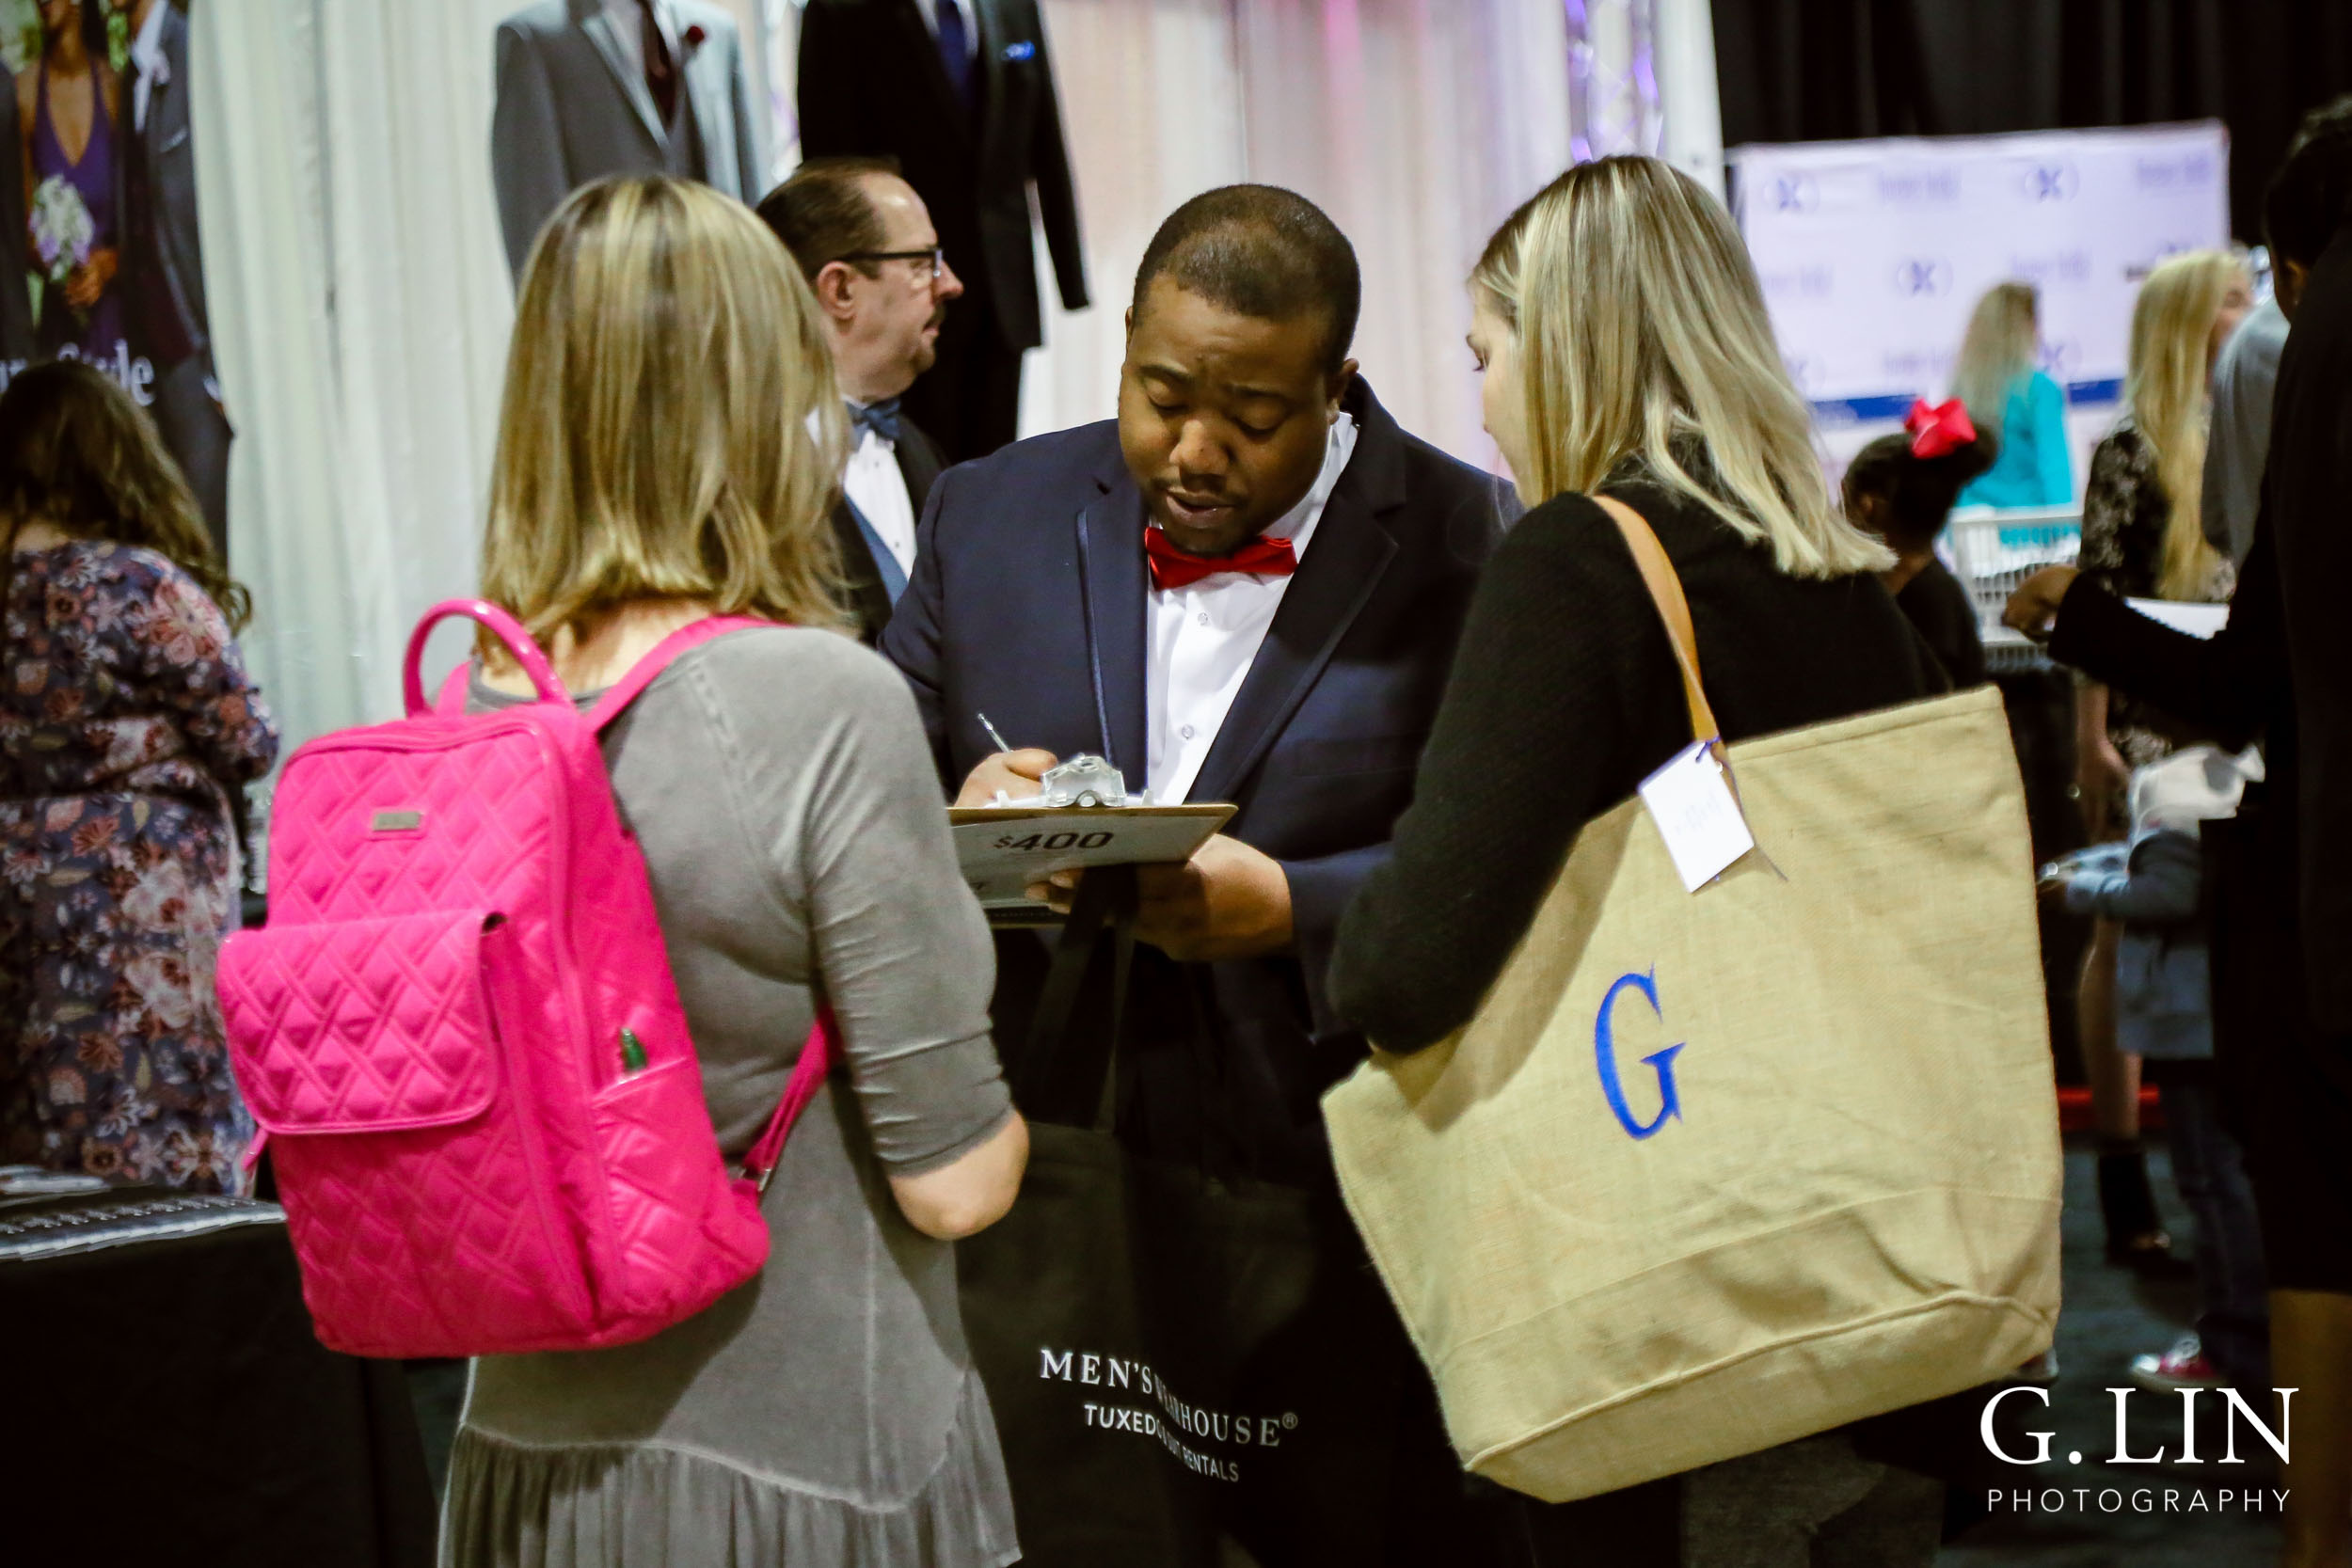 Raleigh Event Photographer | G. Lin Photography | Vendor helping brides at wedding show